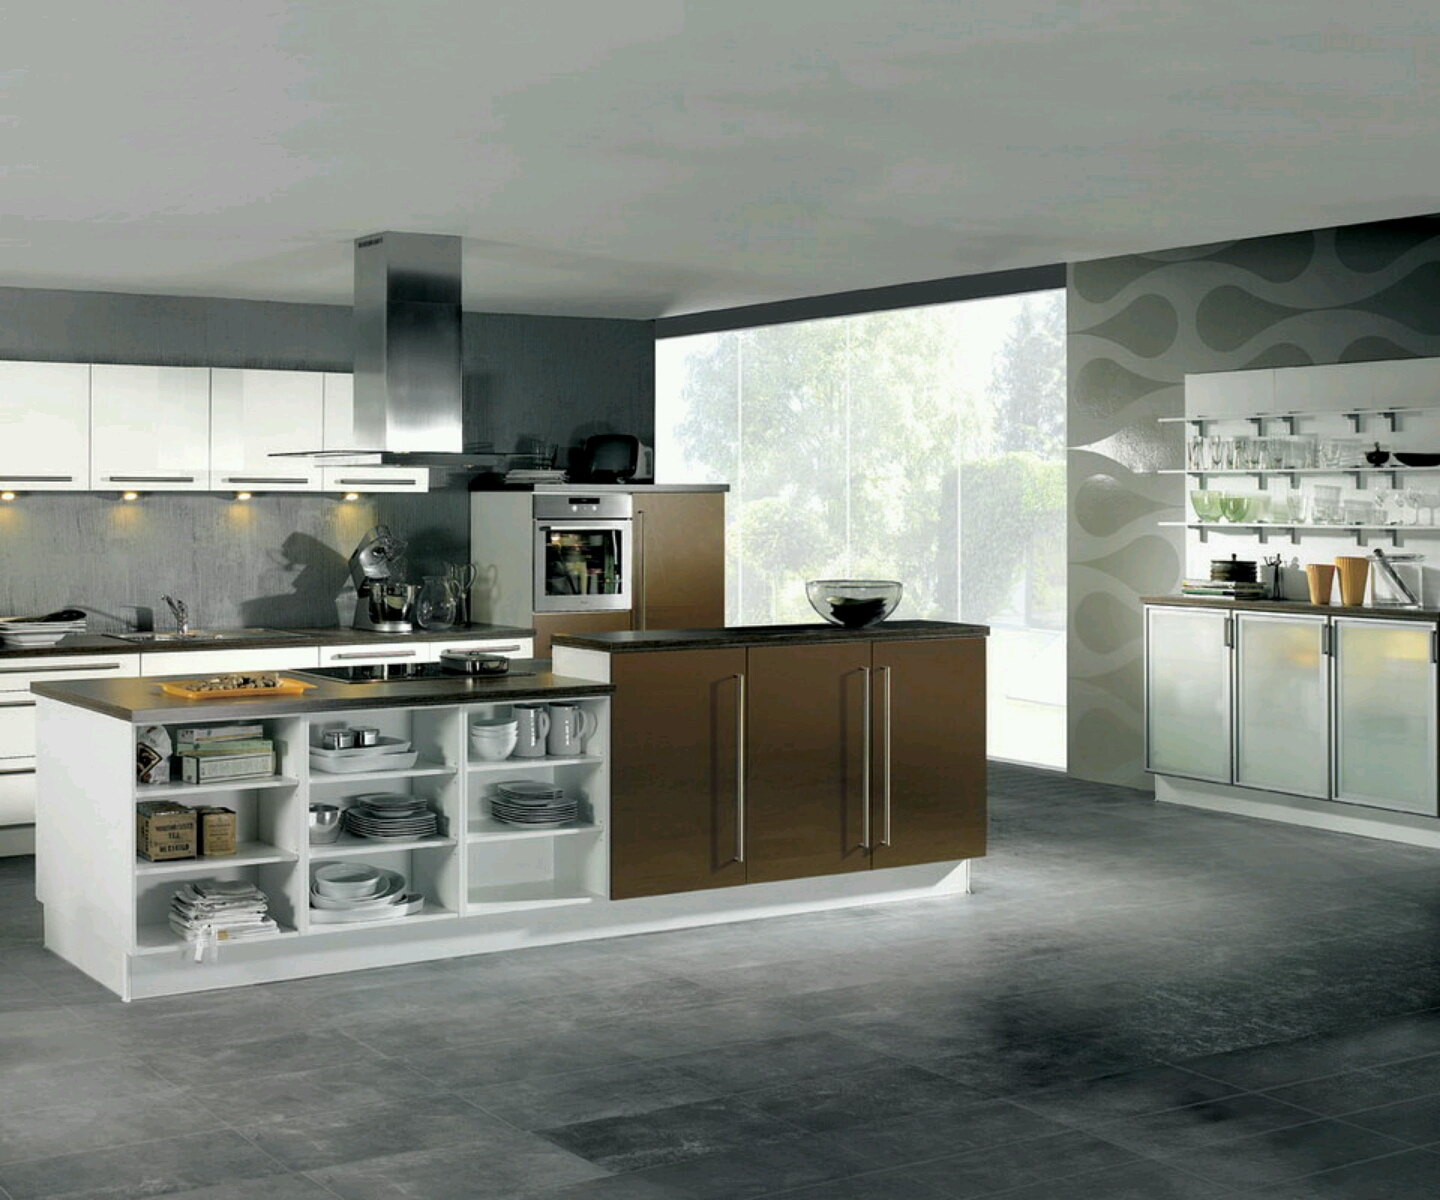 New home designs latest ultra modern kitchen designs ideas New contemporary kitchen design